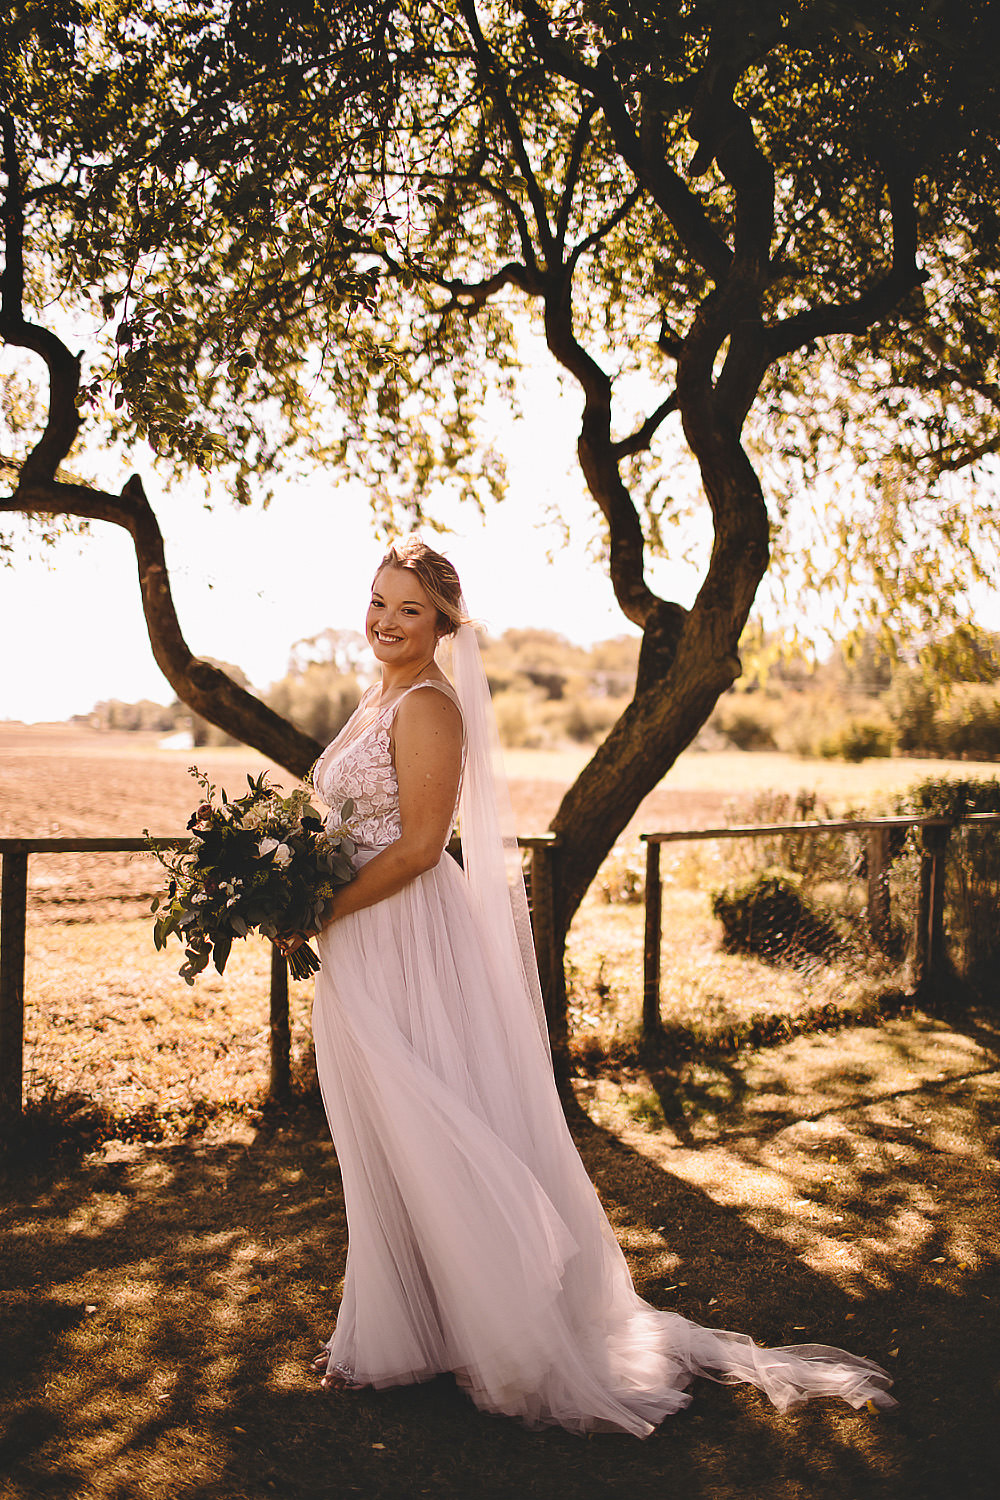 Dress Gown Bride Bridal Juno Watters Wtoo Tulle Straps Veil Suffolk Barn Wedding Carrie Lavers Photography